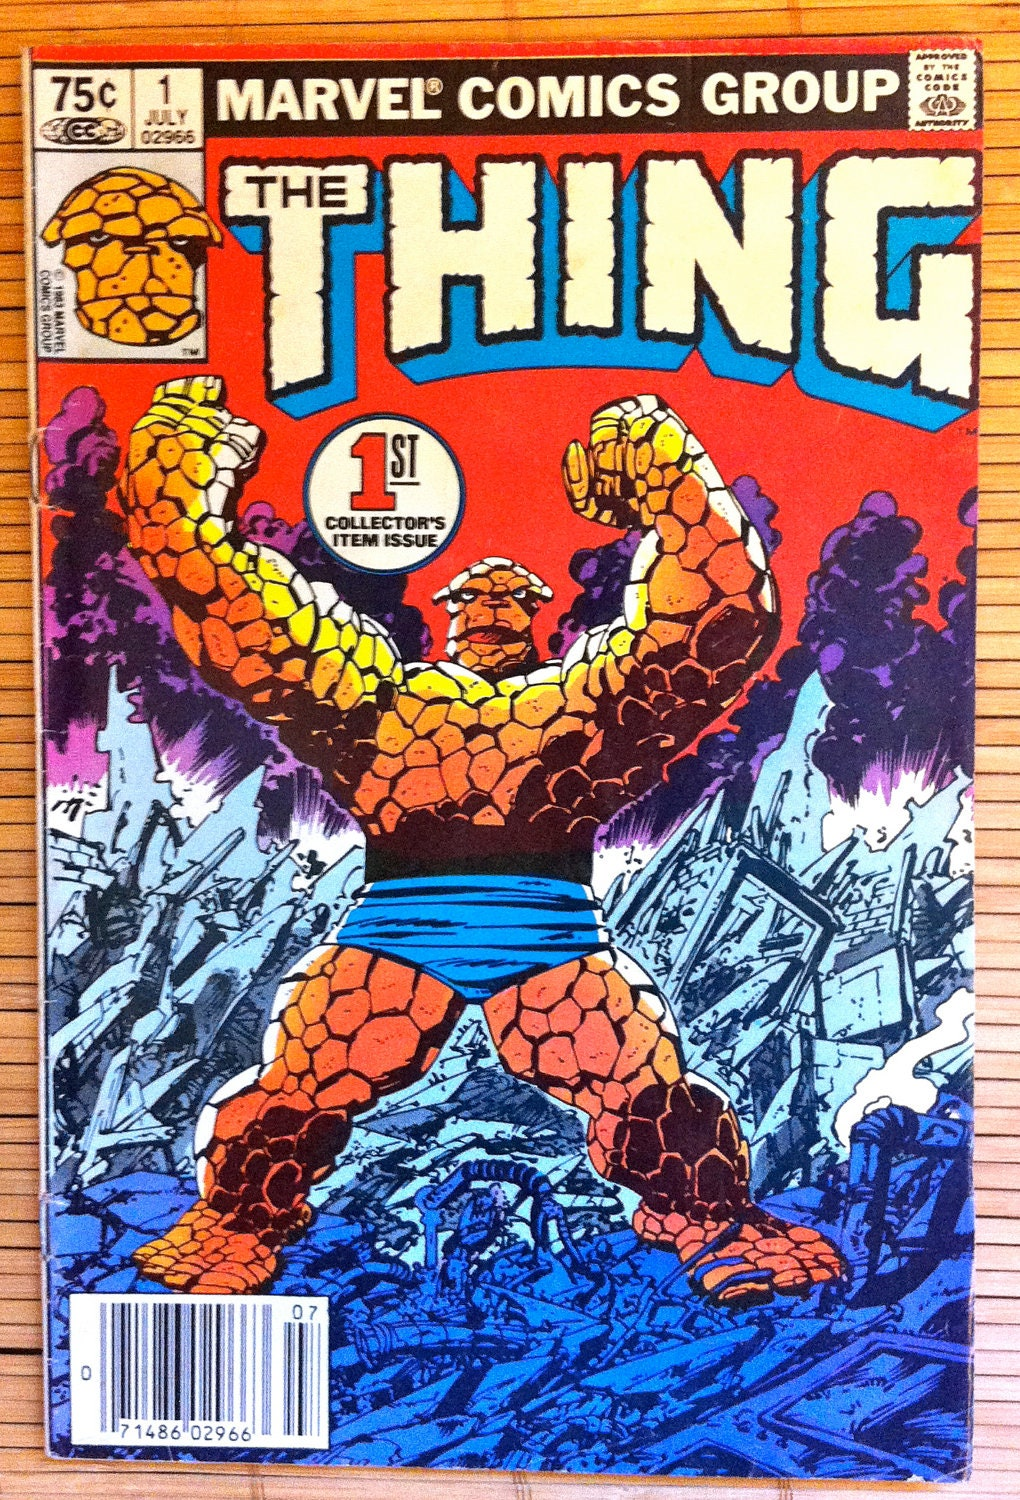 the thing issue 1 marvel comics 1983 fantastic four